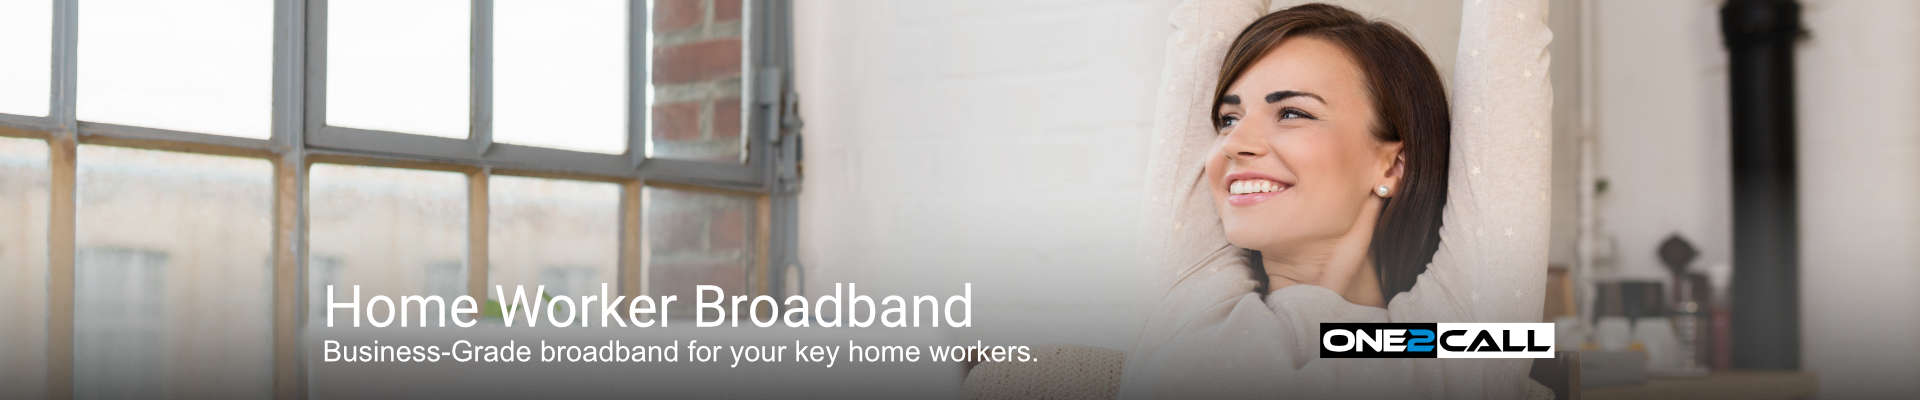 Home Worker Broadband - Business-Grade broadband for your key home workers.